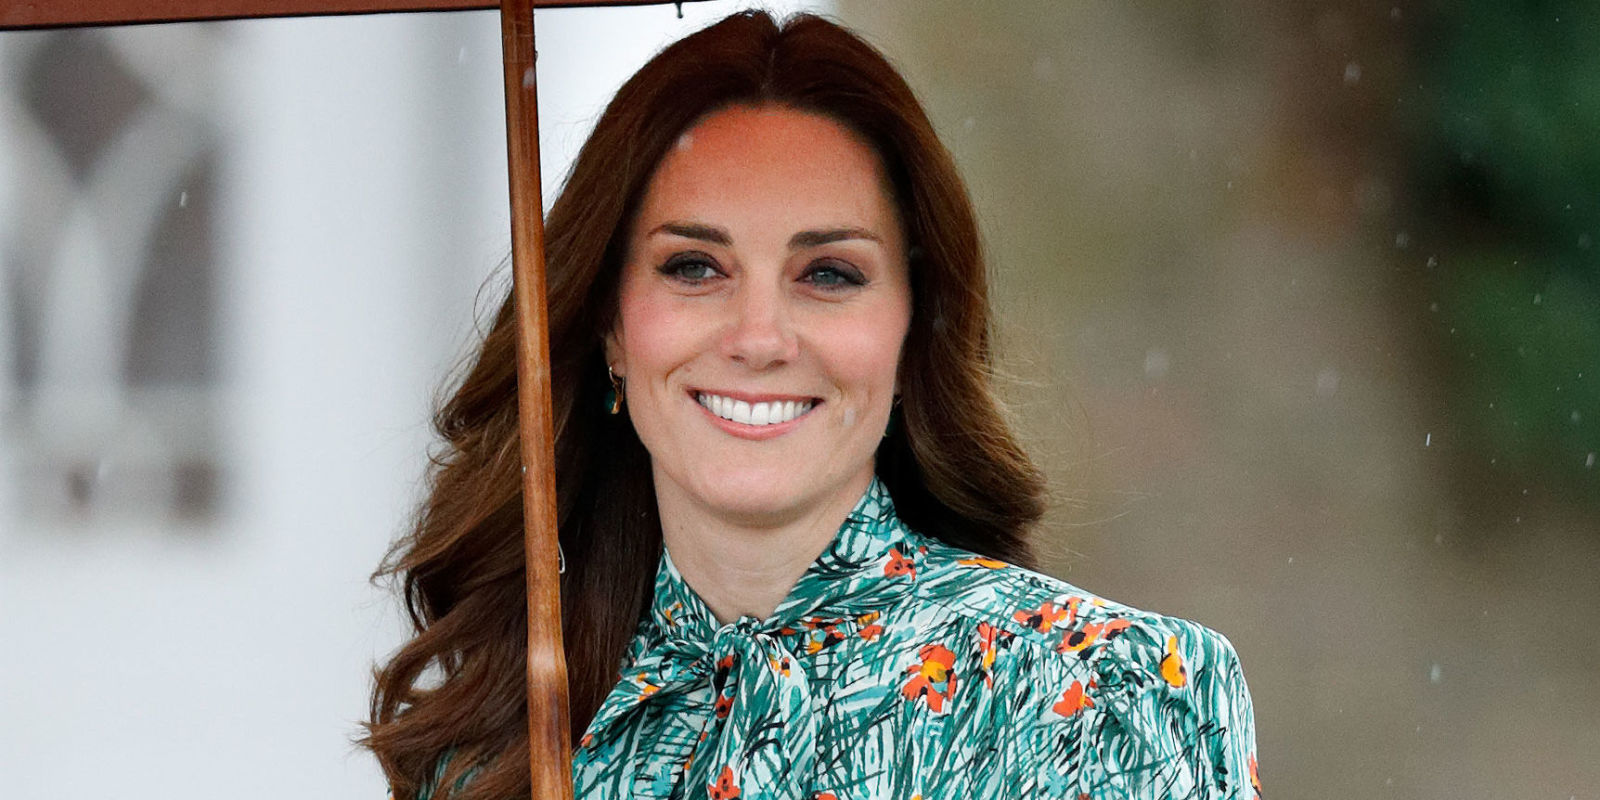 William and catherine dating 6